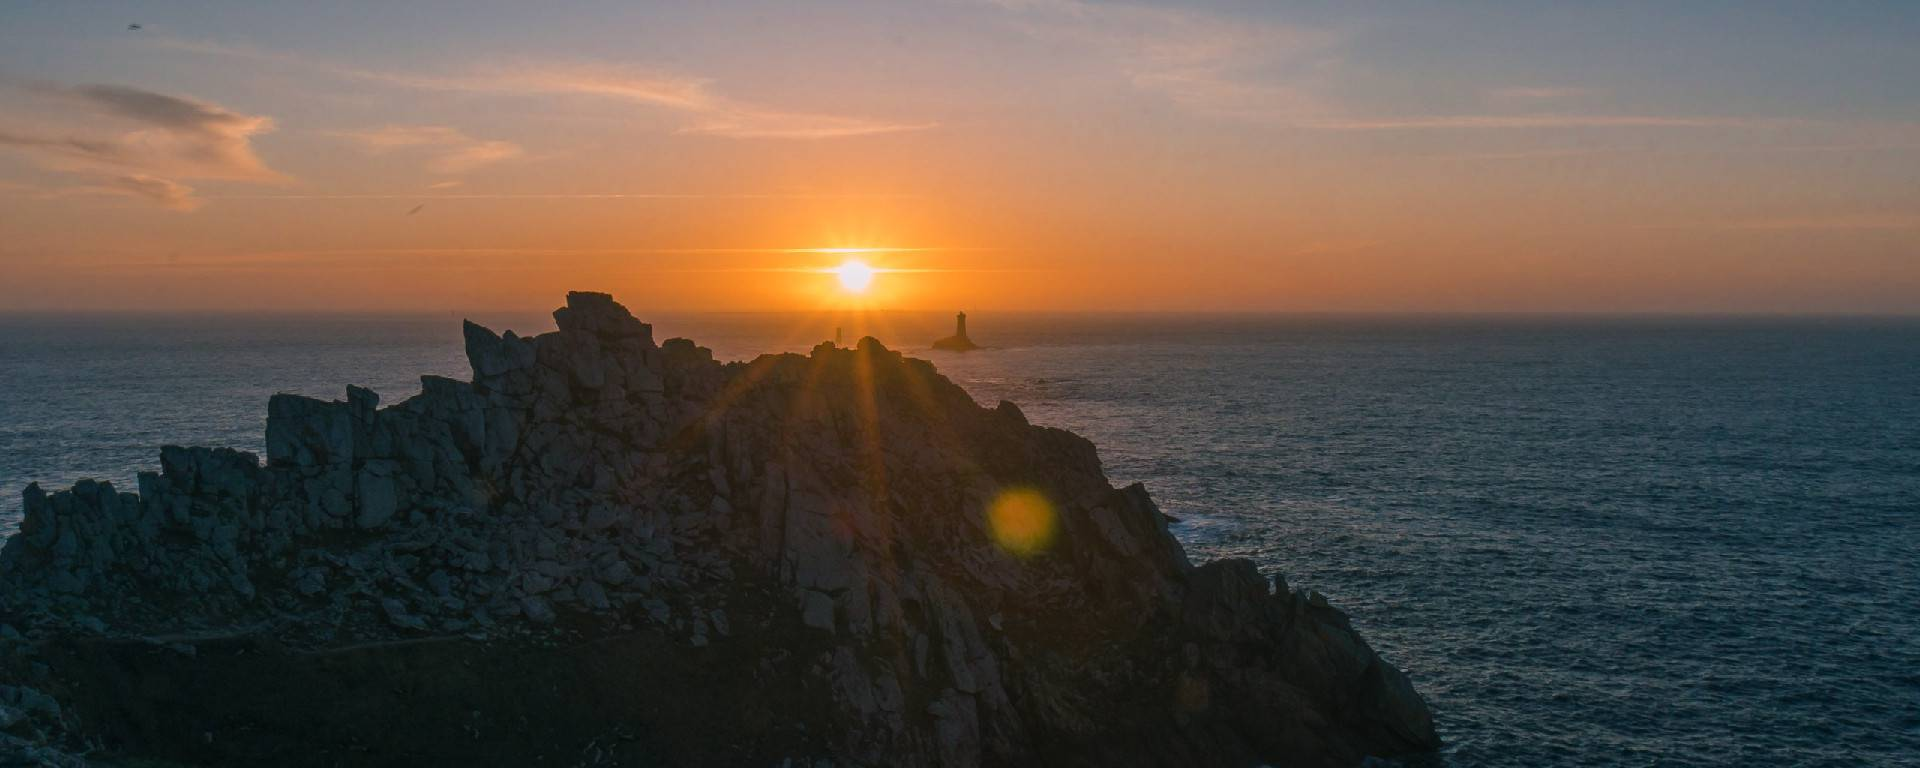 Pointe du Raz © Fab Lents - Unsplash